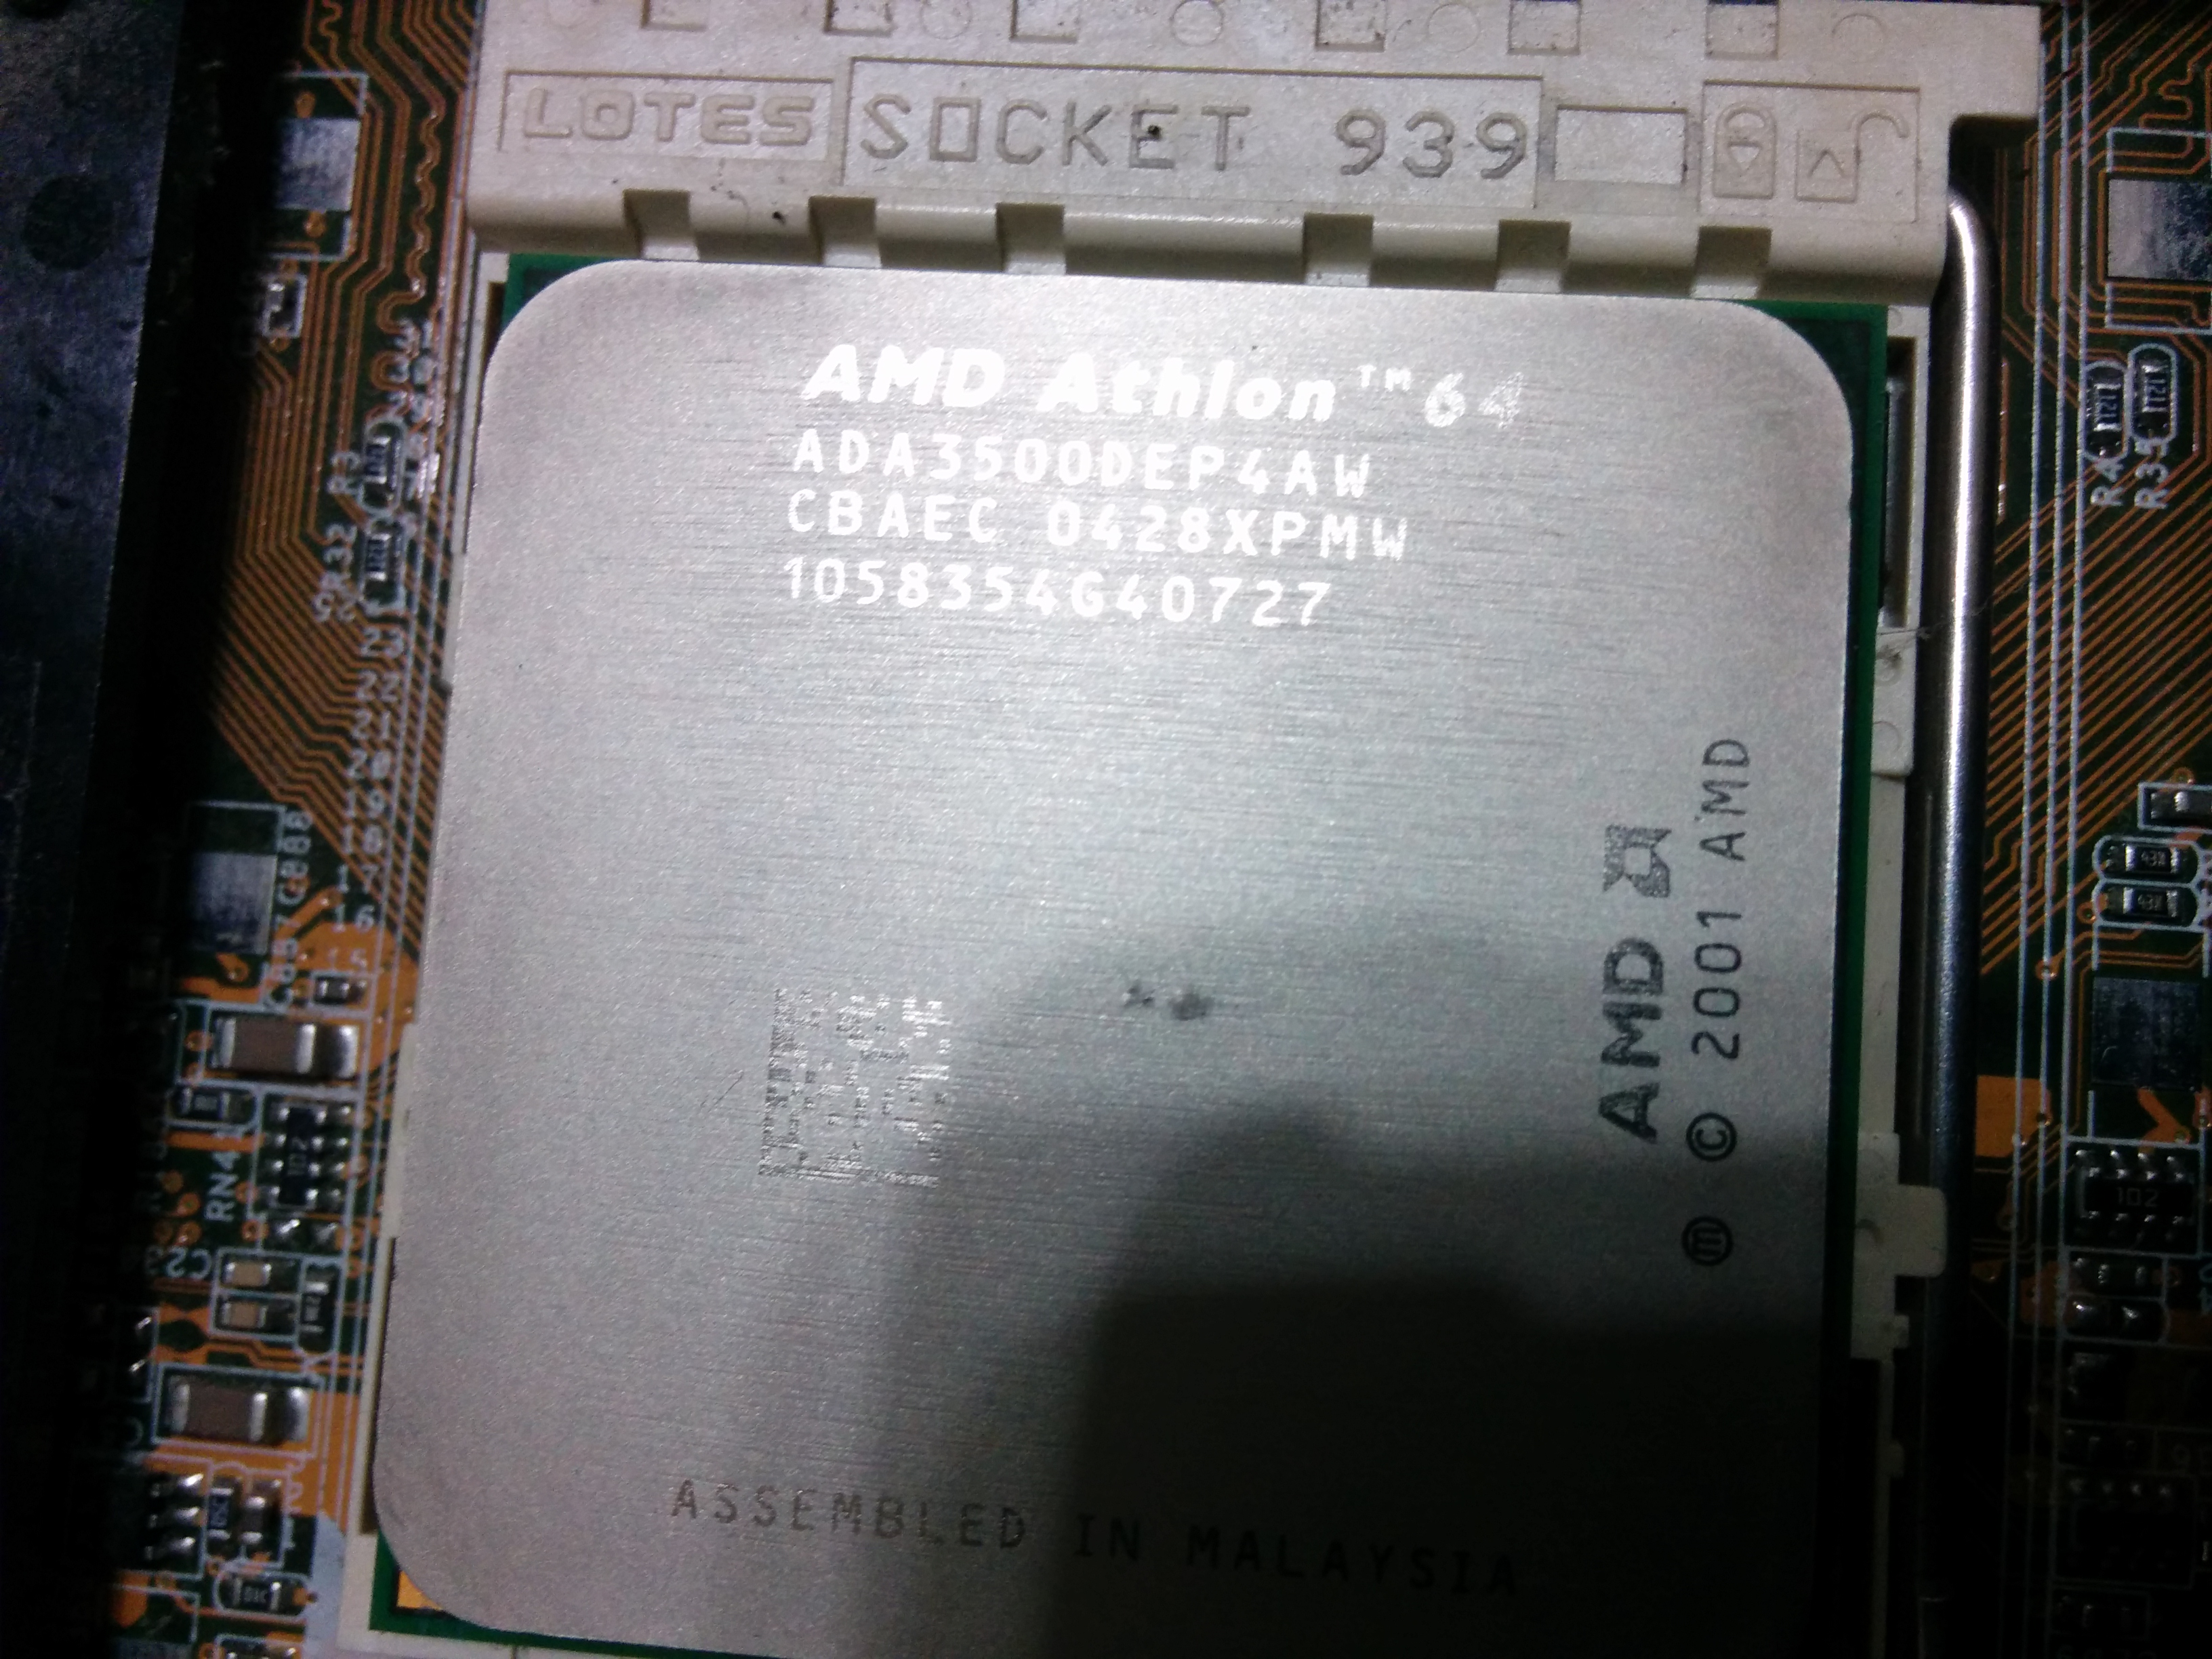 Asus A8V Deluxe 1017 final Windows 8